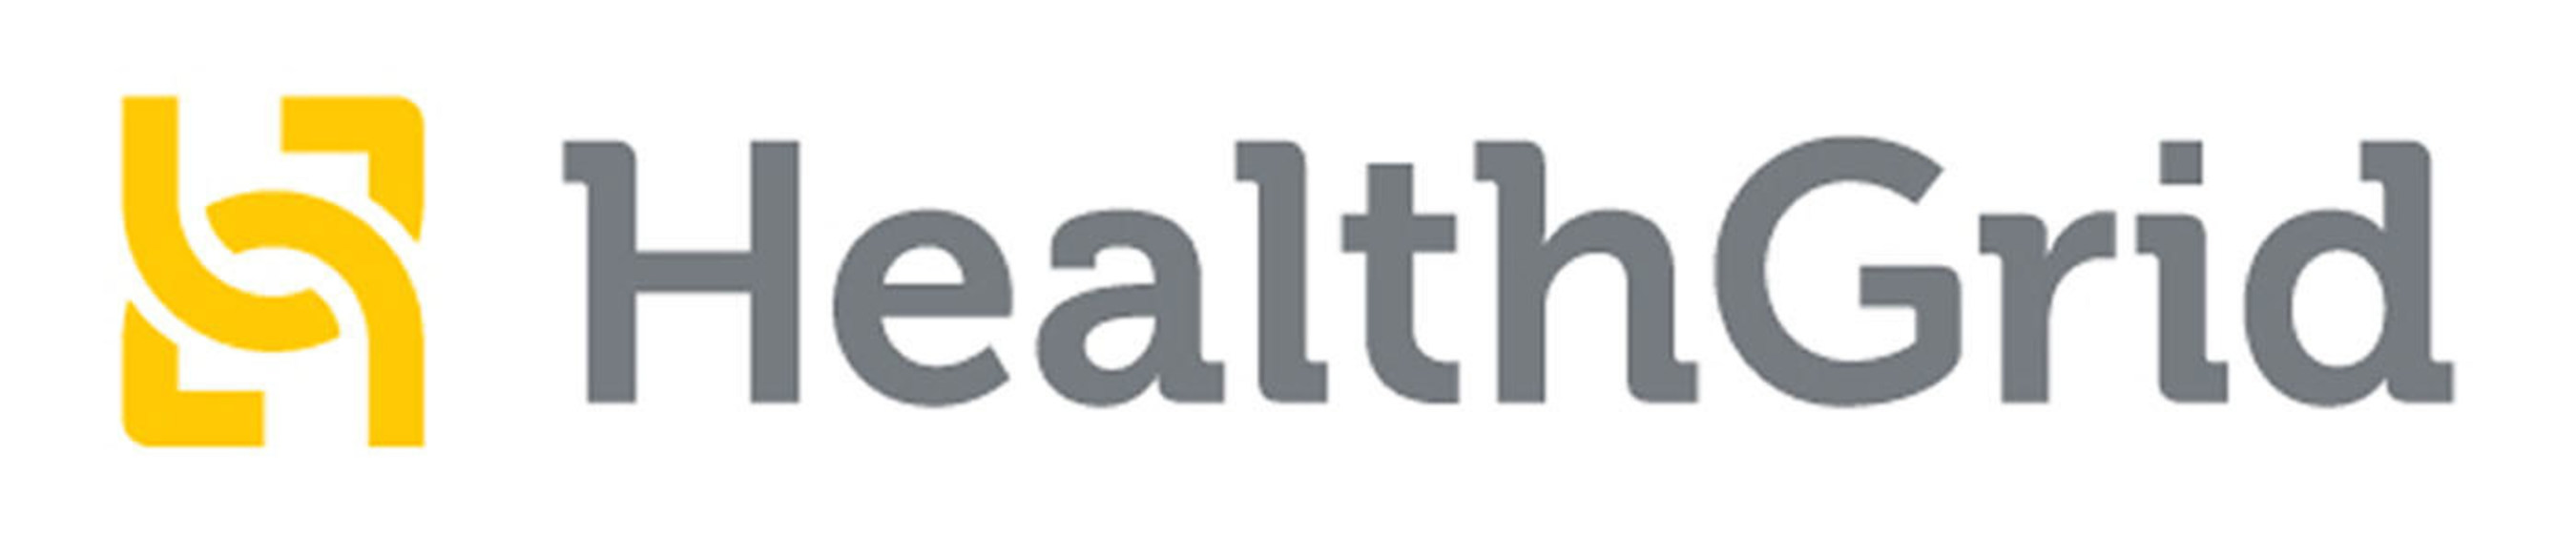 Introducing HealthGrid: First ONC Certified Mobile Collaboration Platform For Connecting Care Teams And Patients